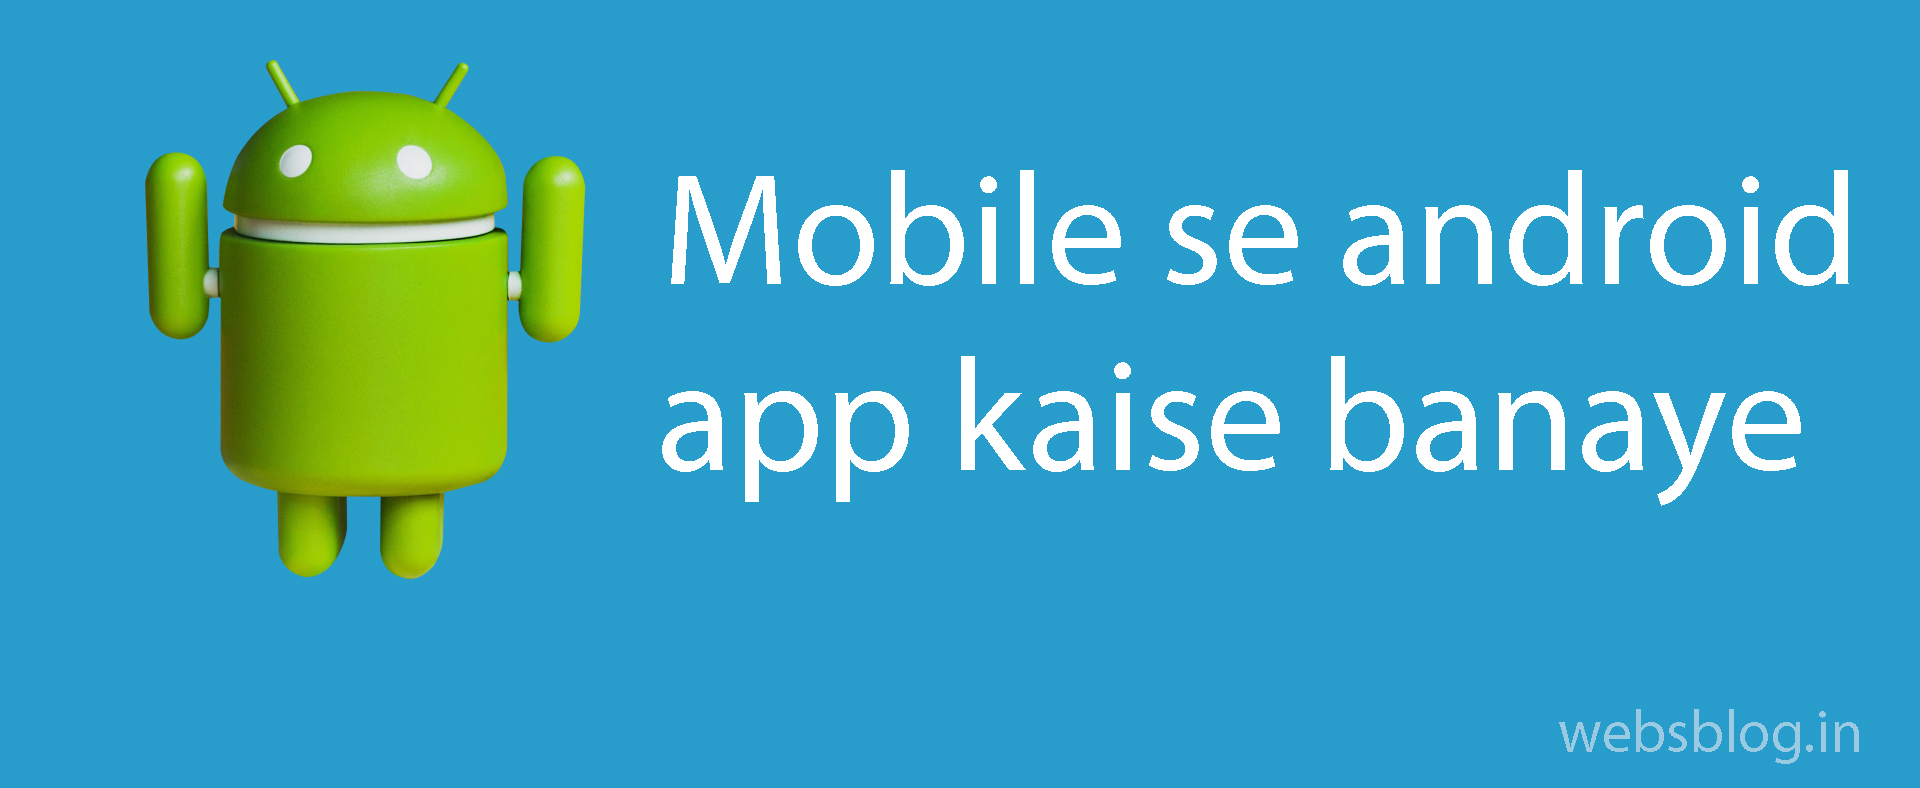 Mobile se android app kaise banaye